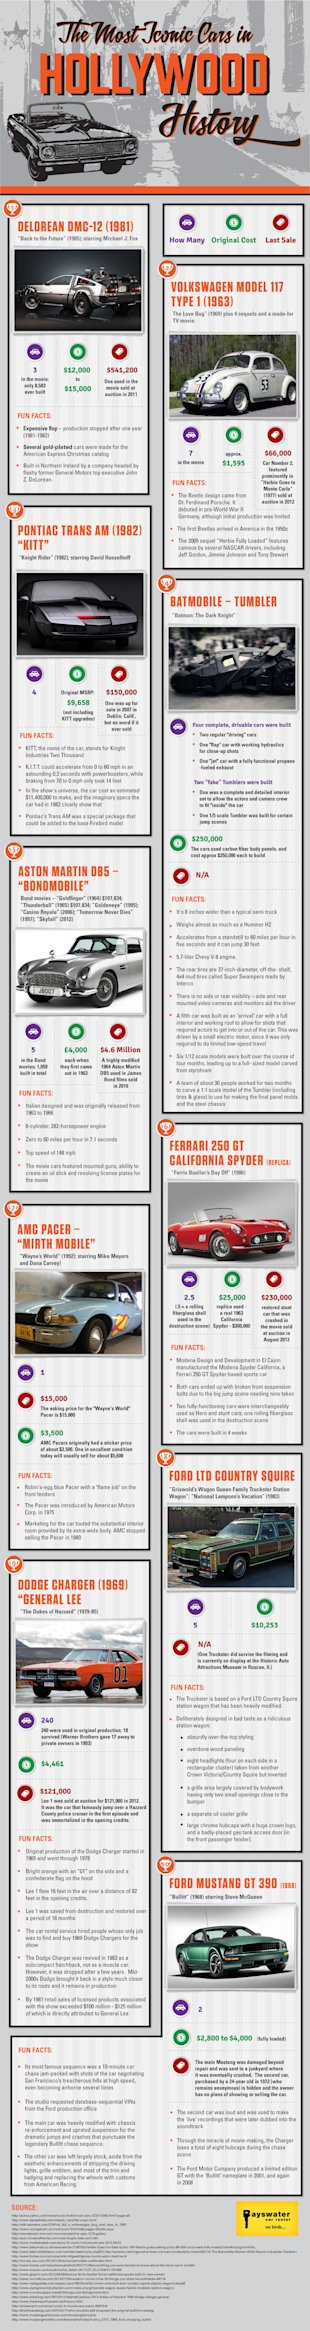 The Most Iconic Cars In Hollywood History (Infographic) image Hollywood Iconic cars